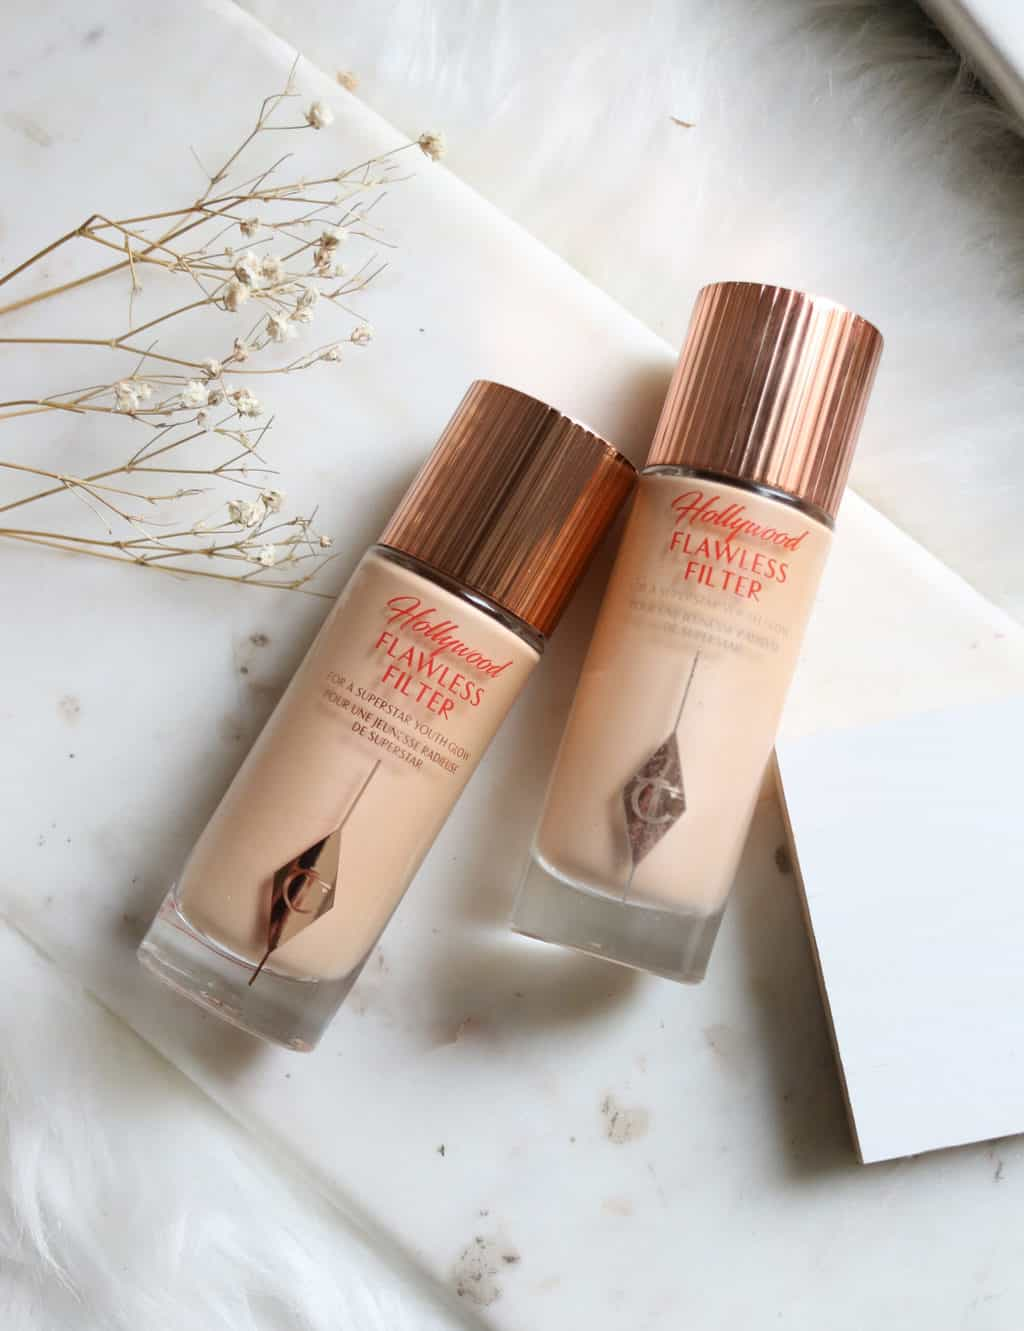 Charlotte Tilbury HollyWood Flawless Filter Shade Range Extension | Comparing Shades 2 and 2.5